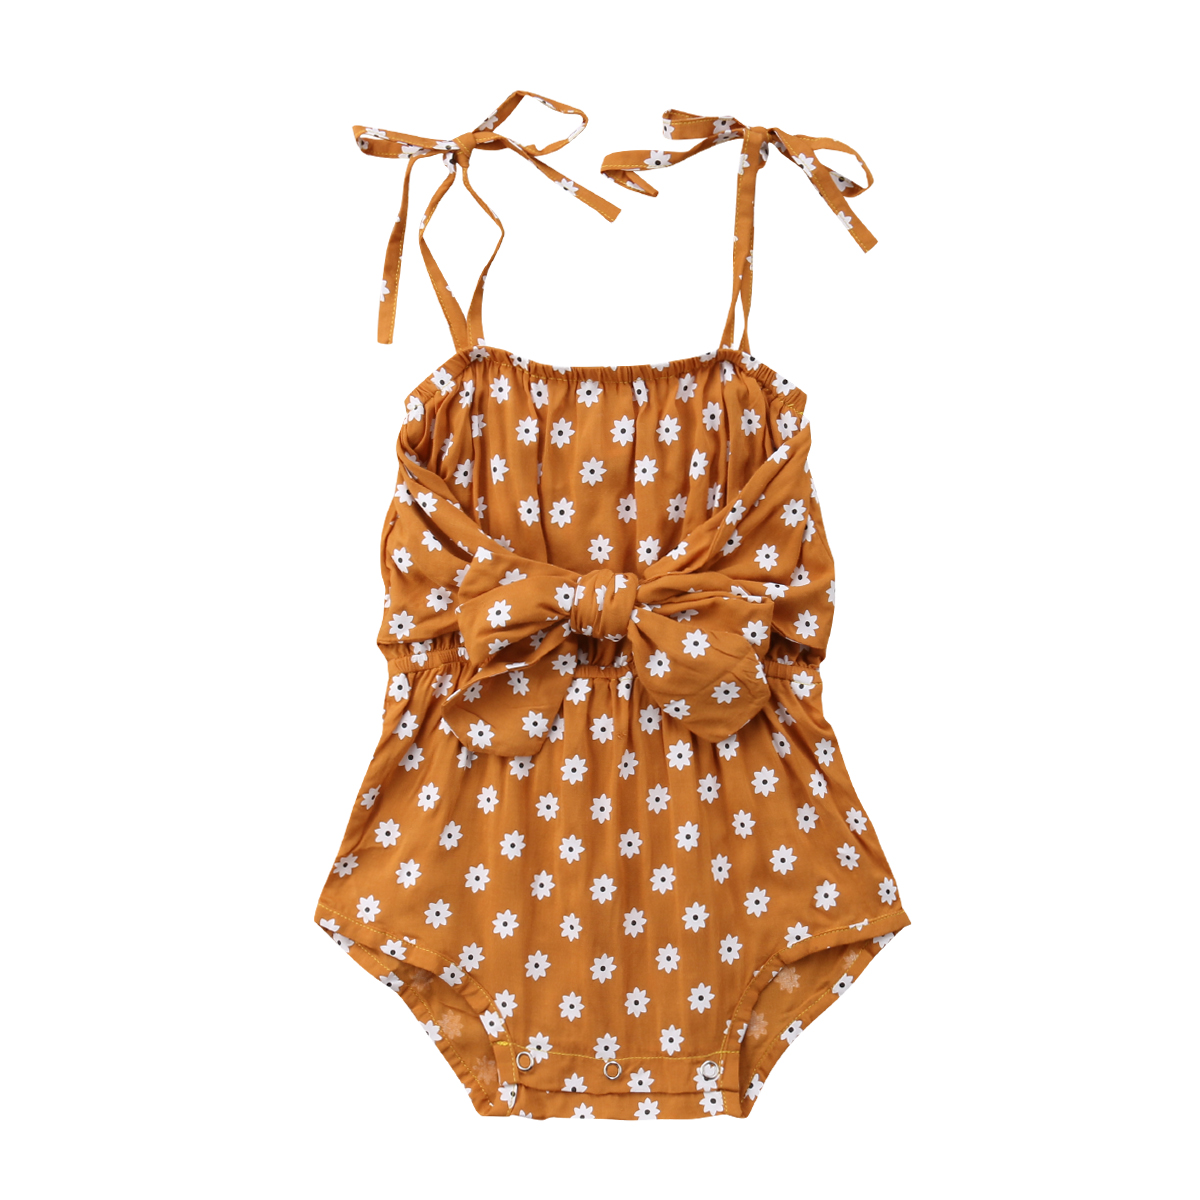 Newborn Baby Girl Strap Bowknot Floral   Romper   Polka Dot Jumpsuit Outfits Sunsuit